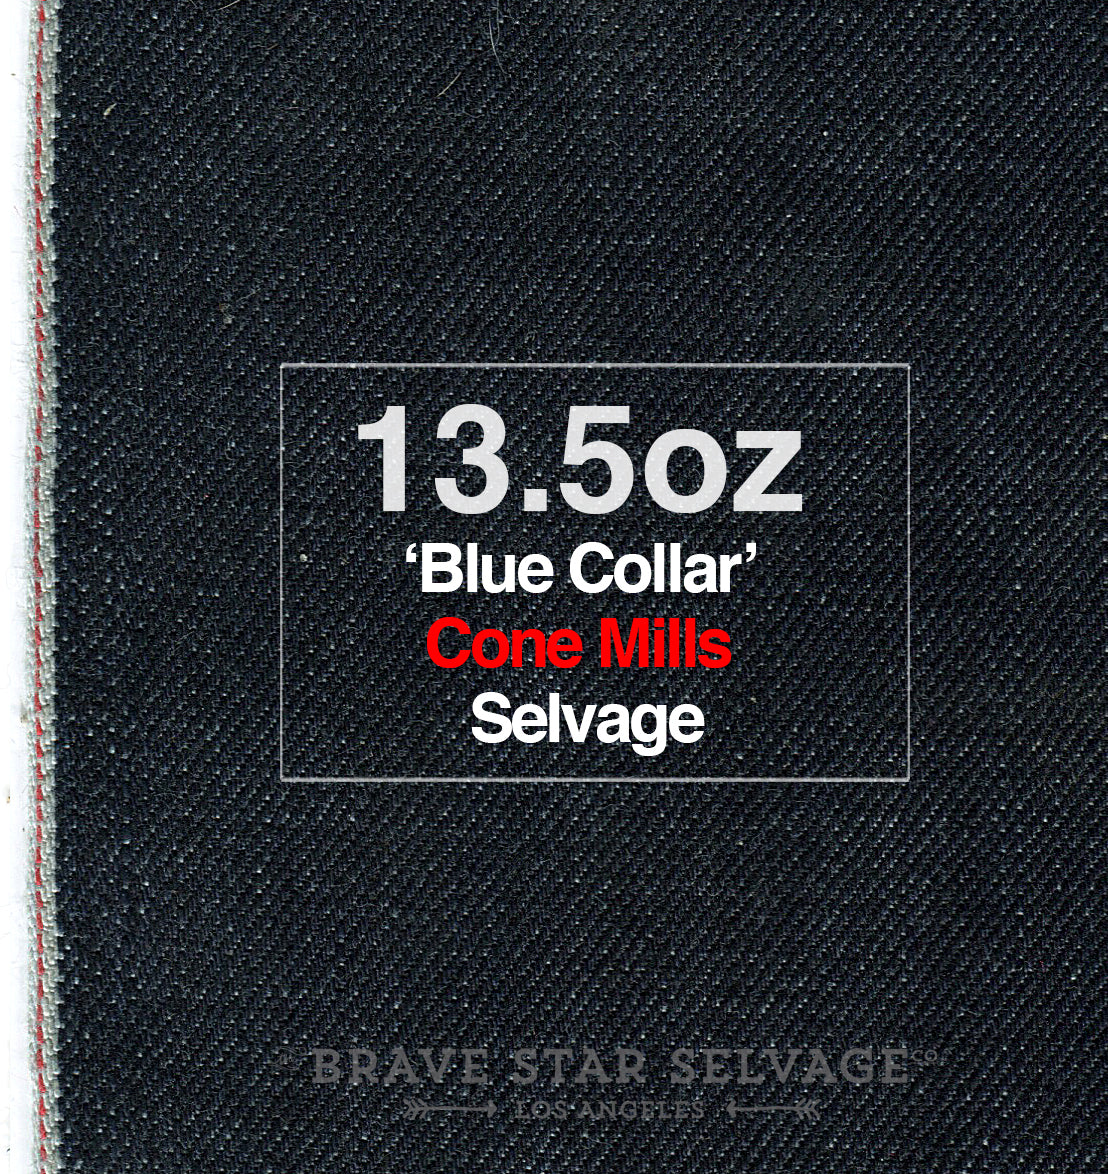 The Skeleton Skinny 13.5oz 'Blue Collar' Cone Mills Selvage Pre Order